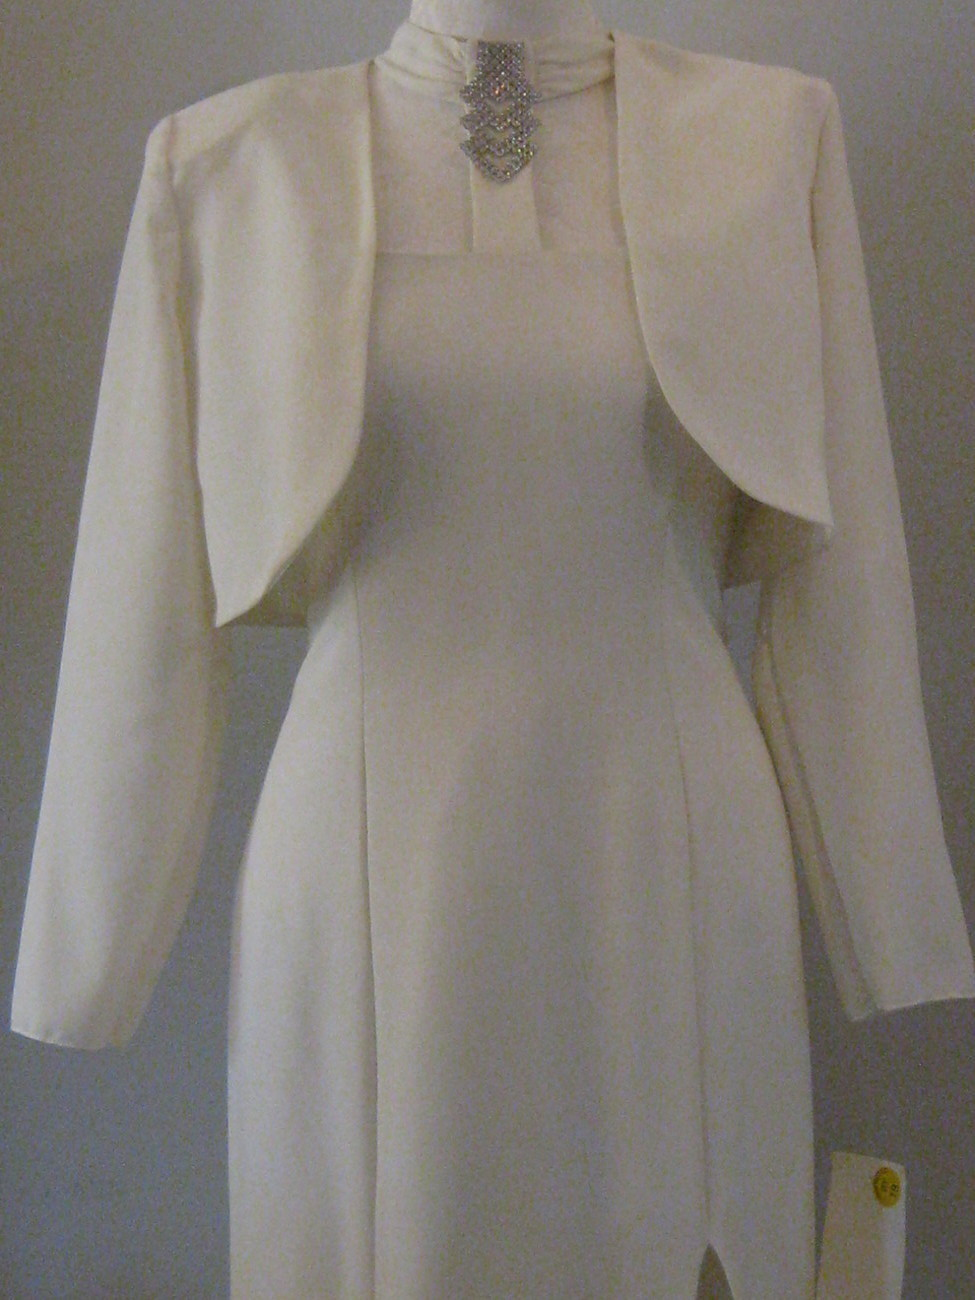 White Gown With Rhinestones  Jacket  Size 11 12